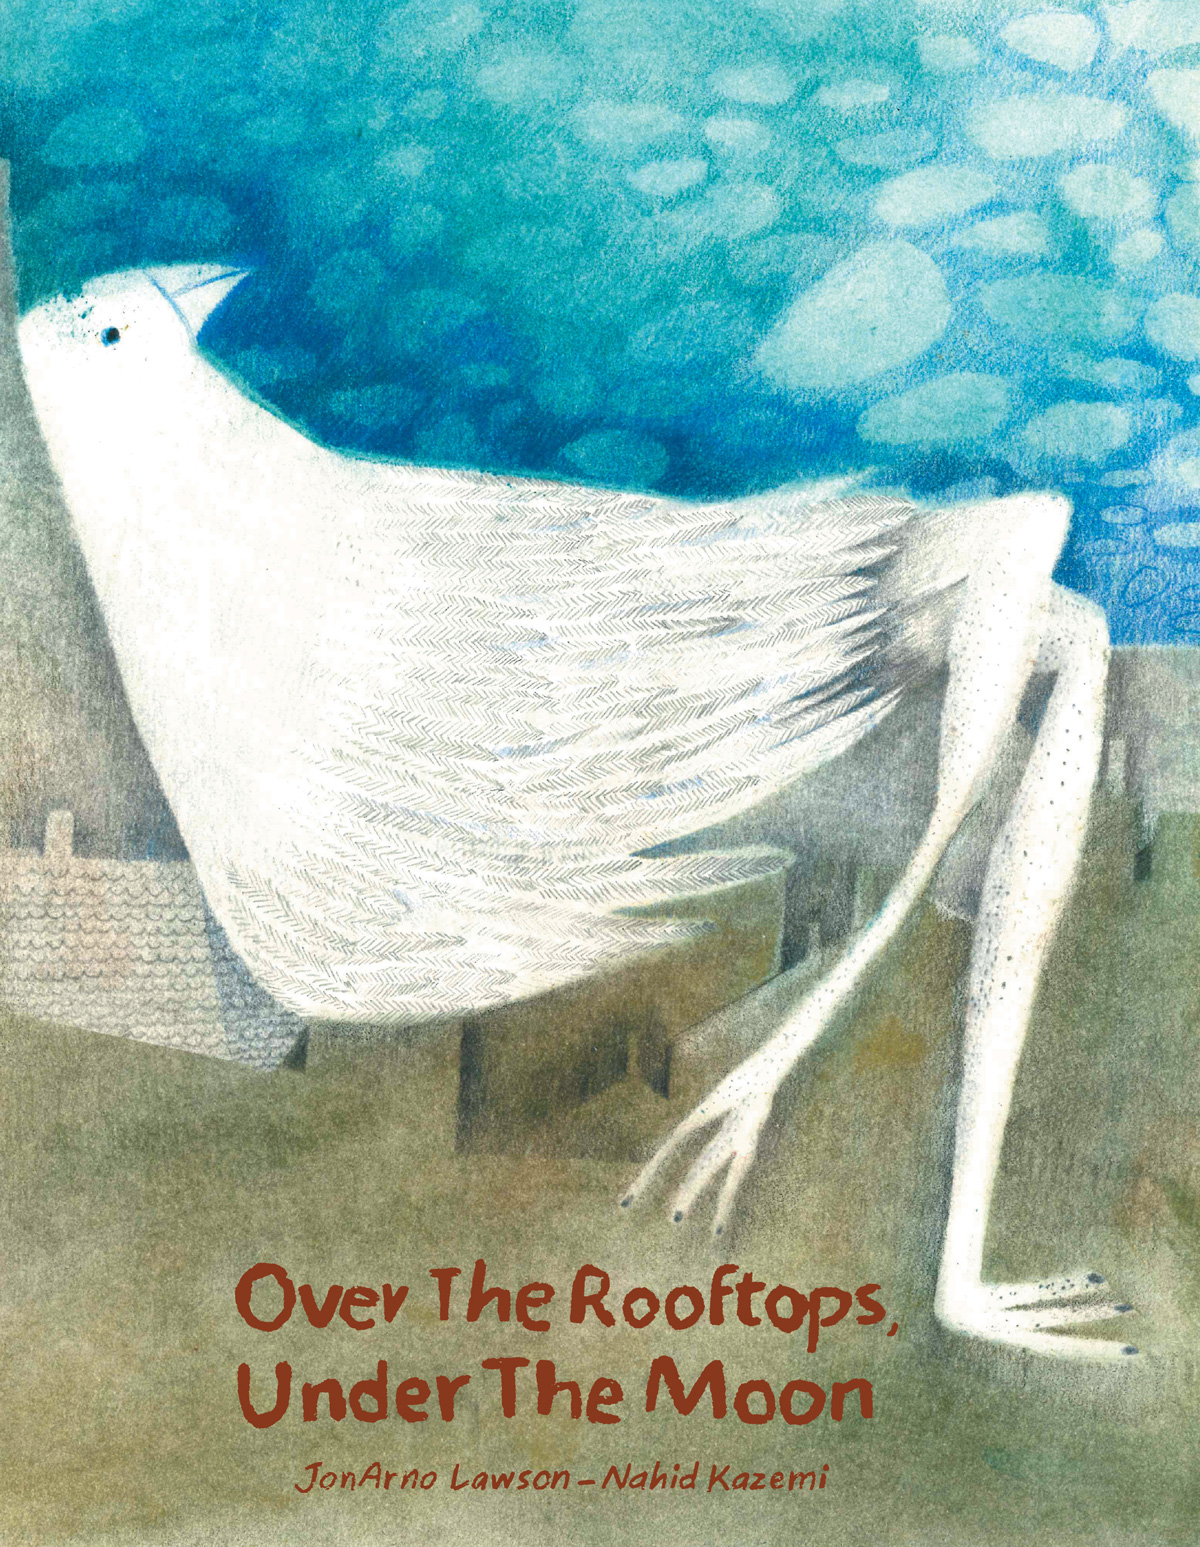 Over the Rooftops, Under the Moon: A Lyrical Illustrated Meditation on Loneliness, Otherness, and the Joy of Finding One's Community